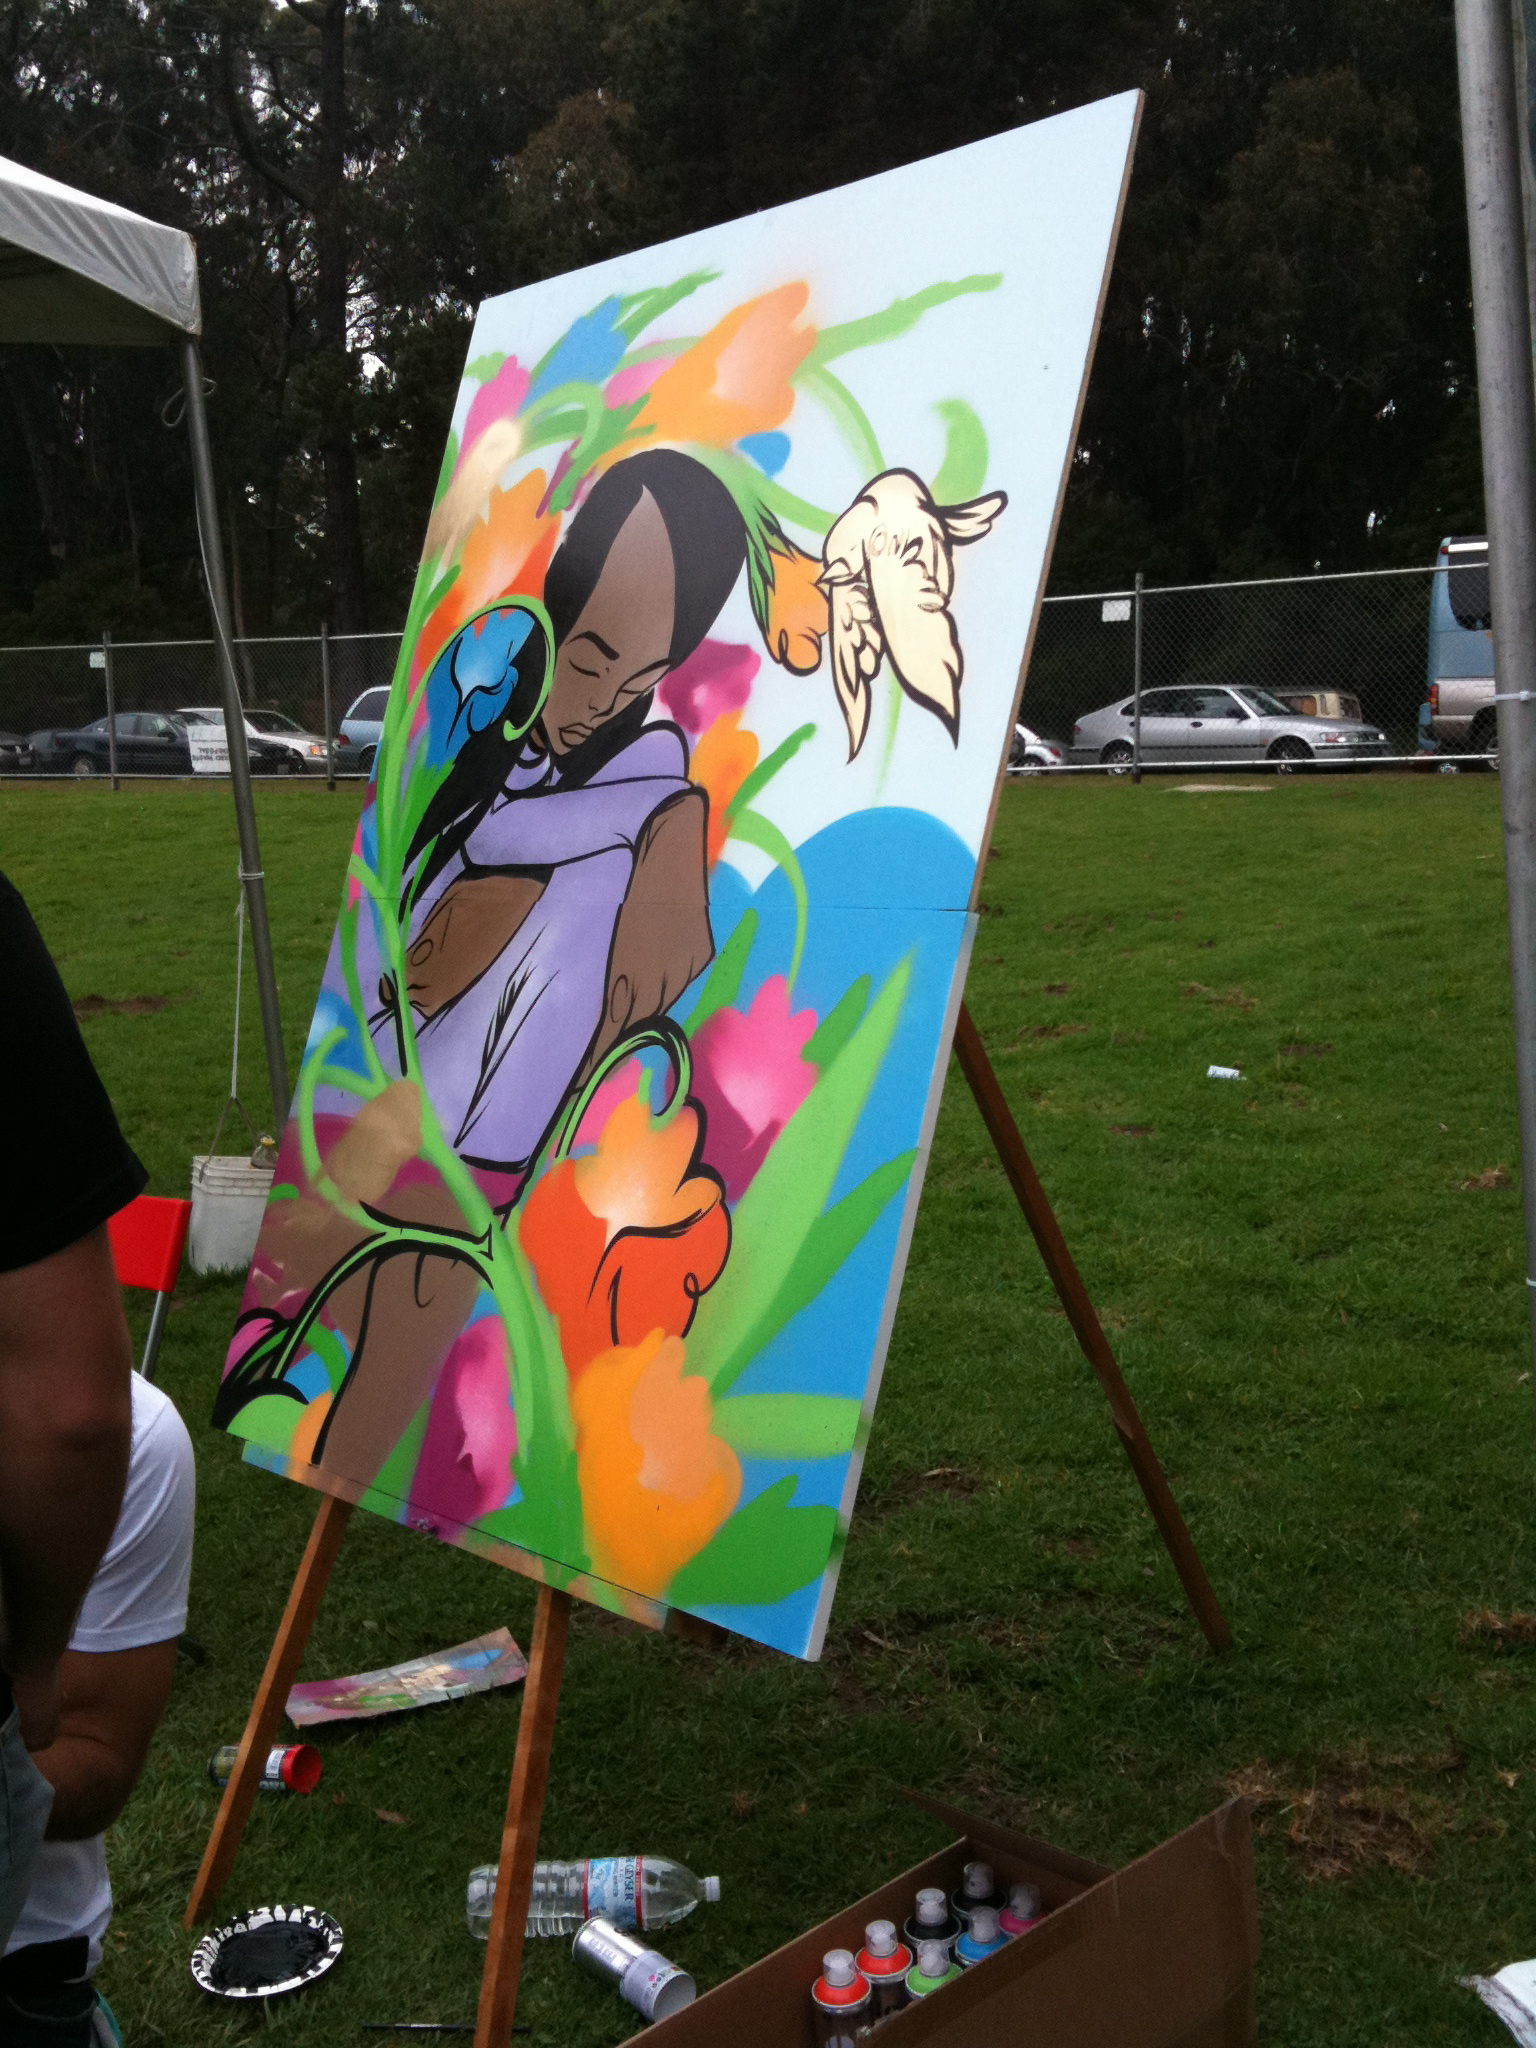 img 0256 Sam Flores, recap: live painting in Golden Gate Park upper playground Sam Flores power to the peaceful paint live painting graffiti fifty24sf gallery art